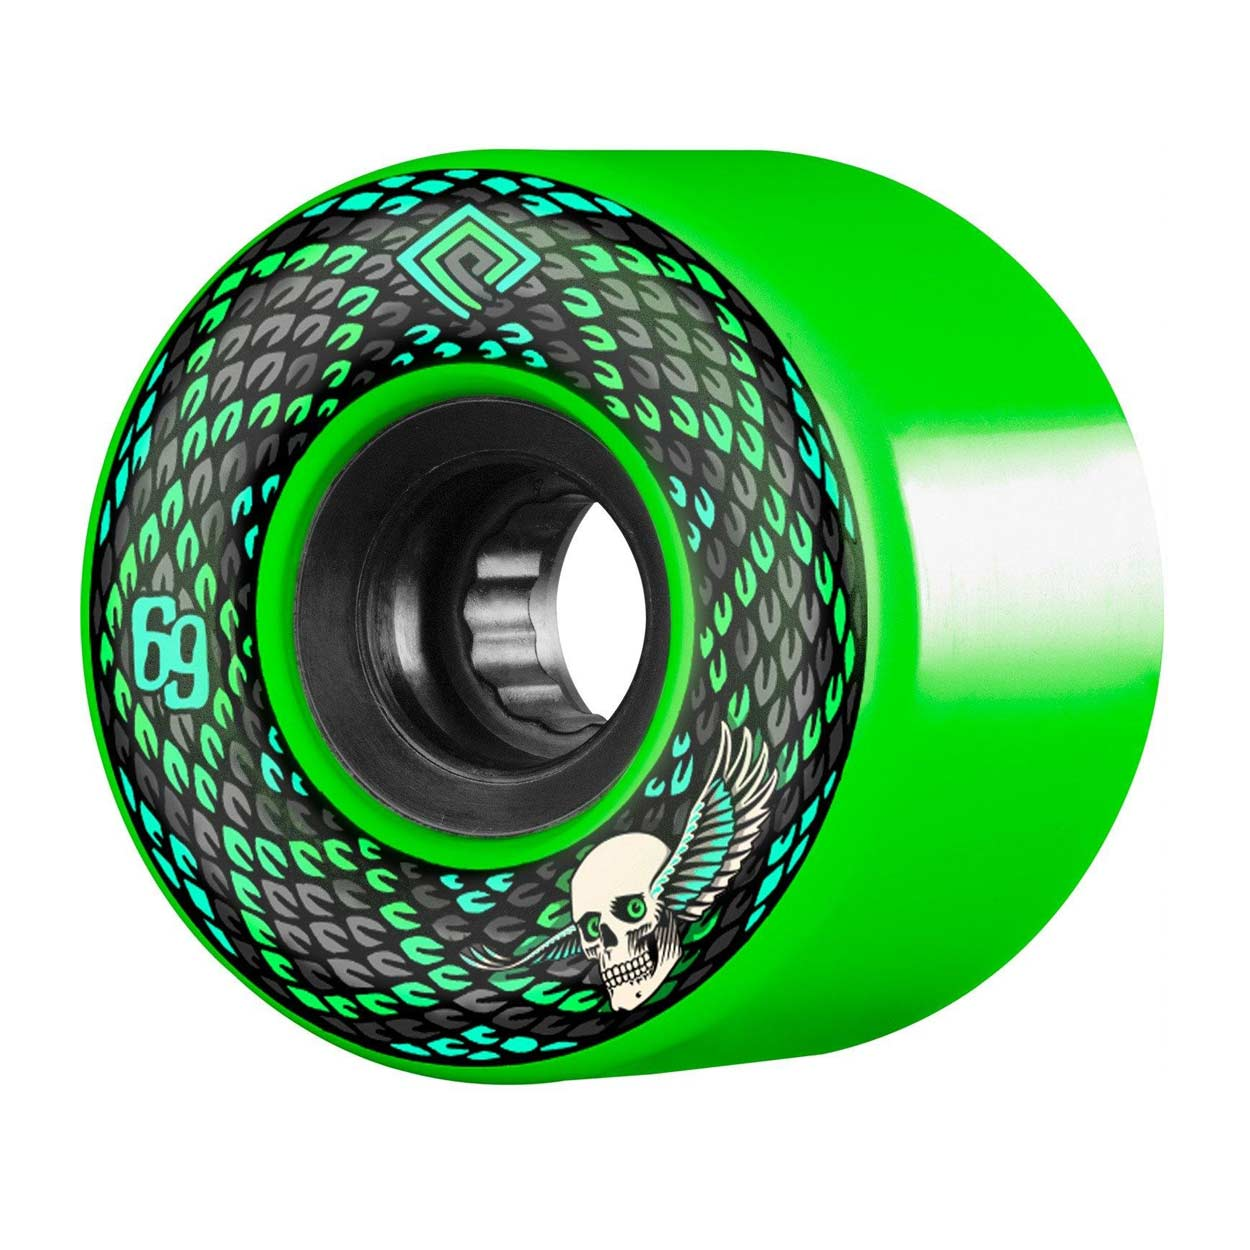 Powell Peralta Snakes Green 69mm 75a Wheels